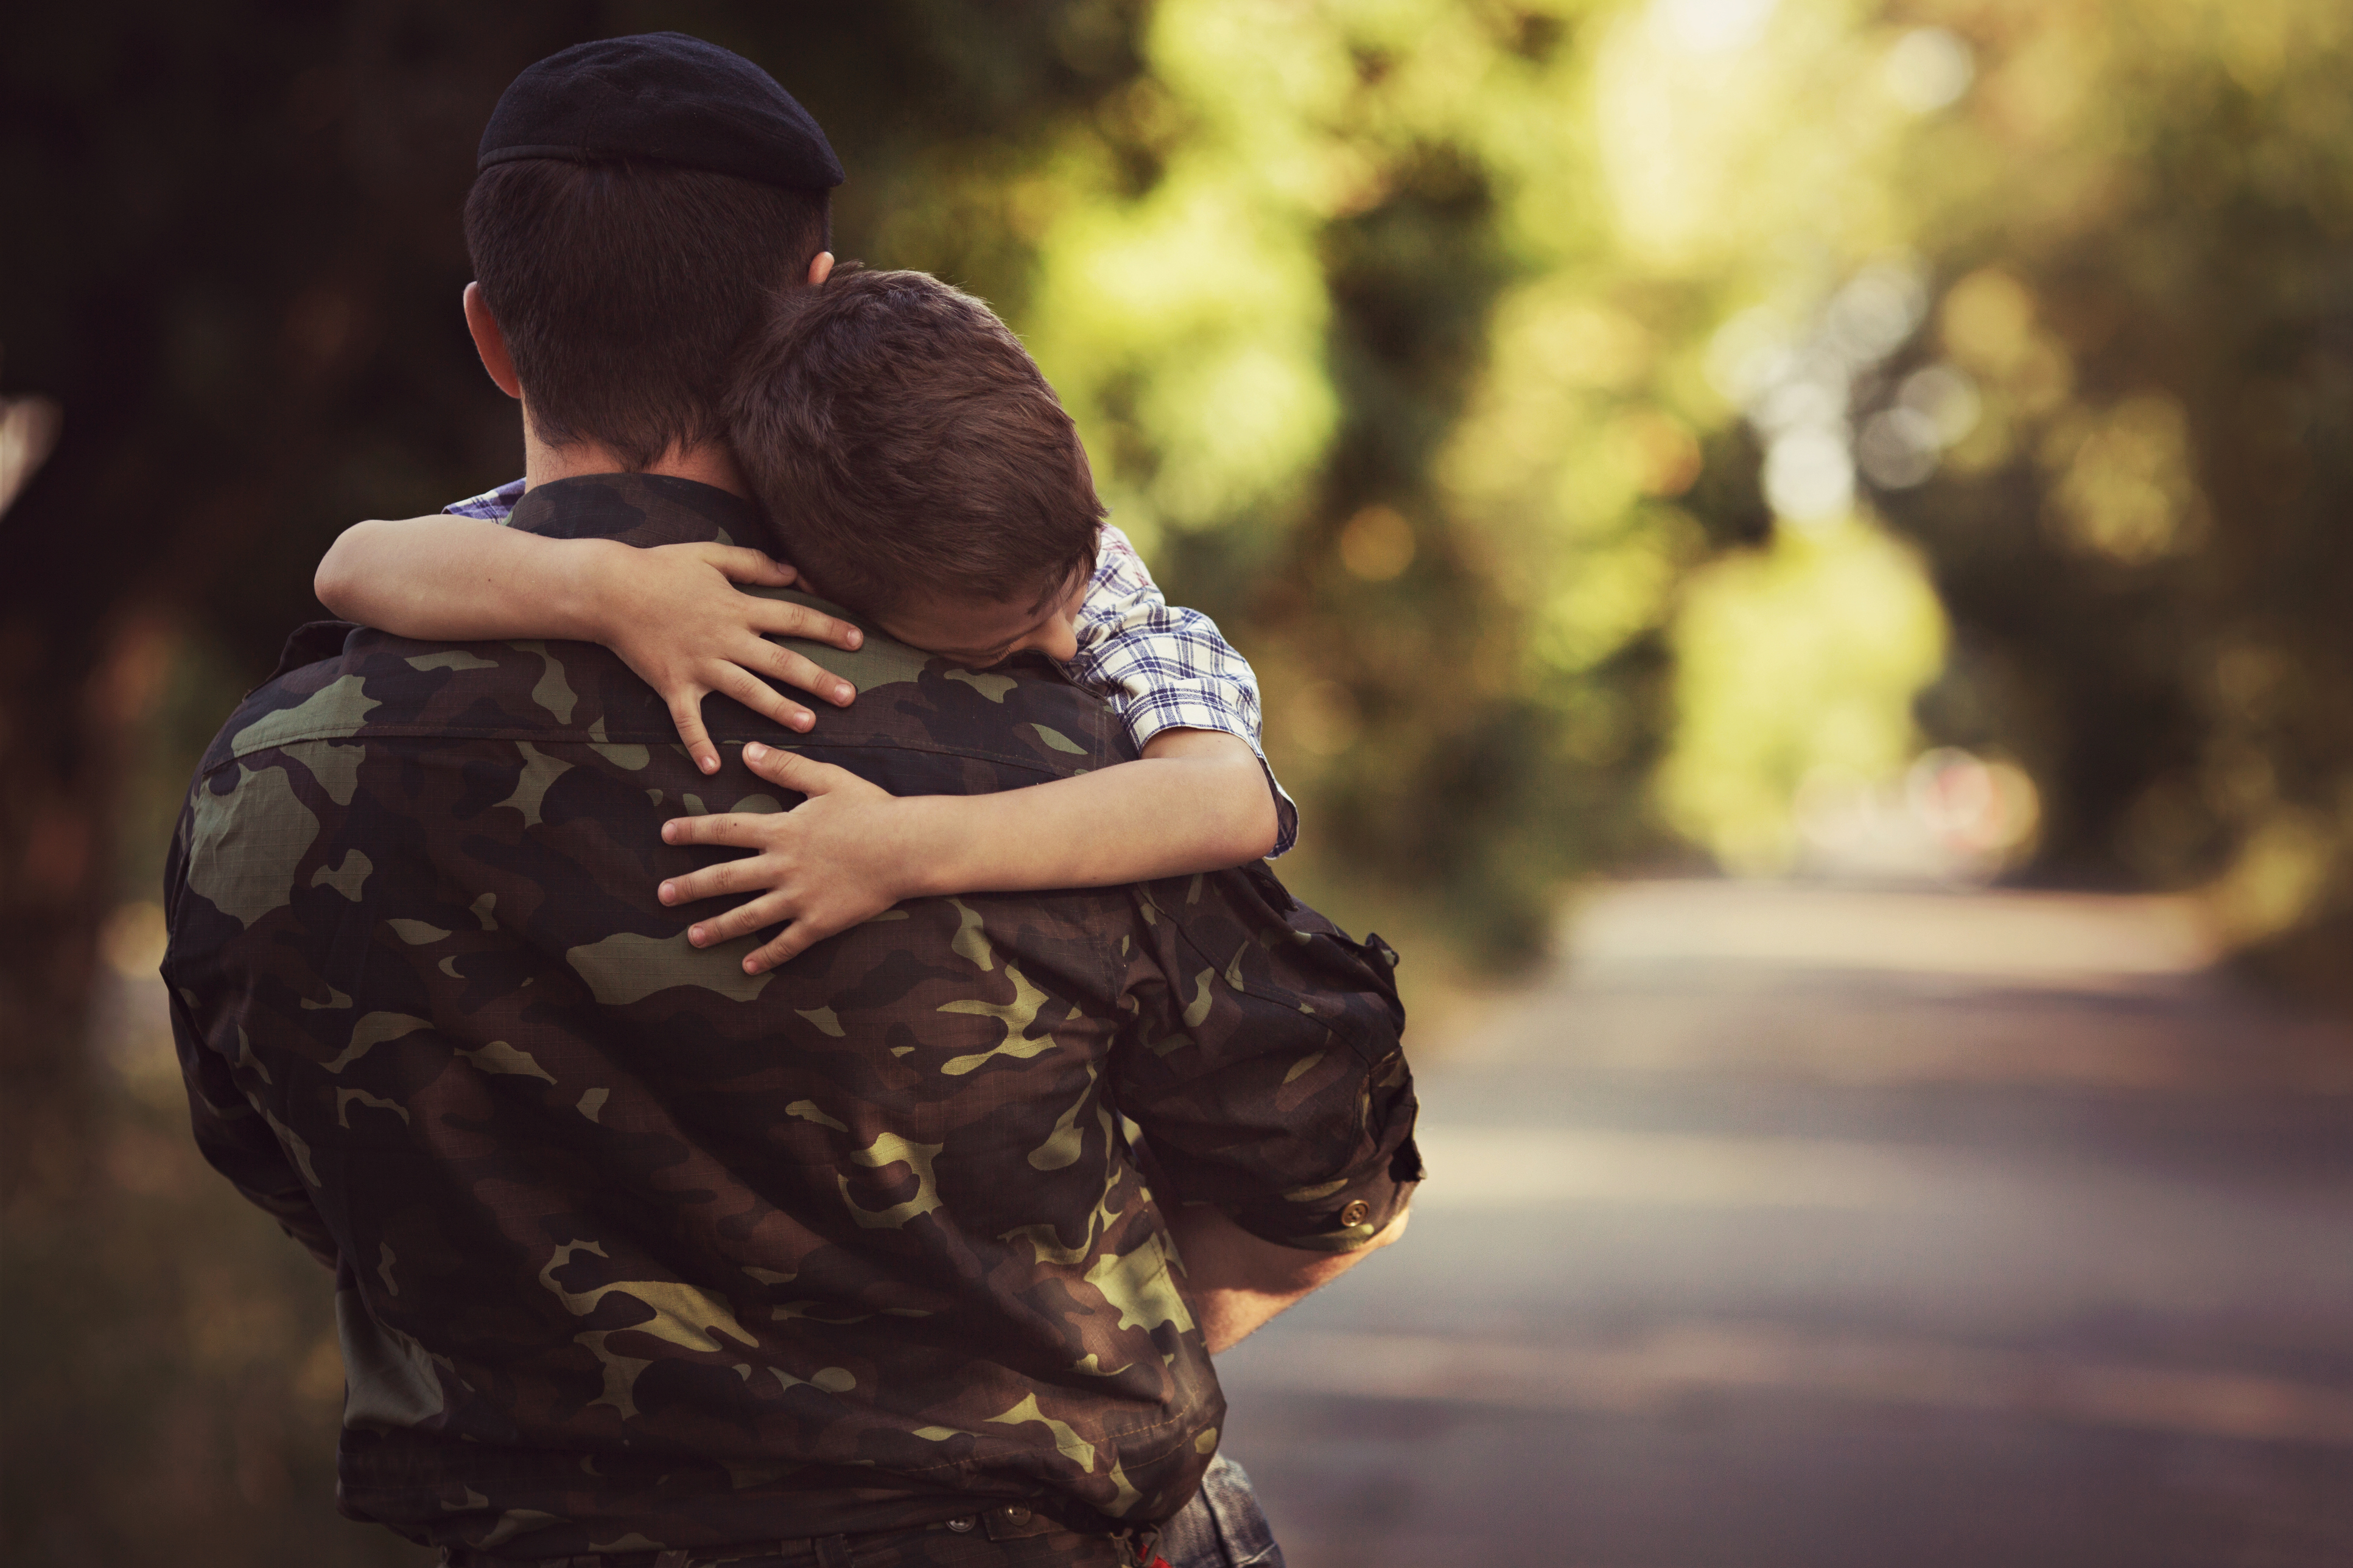 Love Wallpaper Of Army : 13newsnow.com Domestic violence, child abuse issues shake military, senators vow action